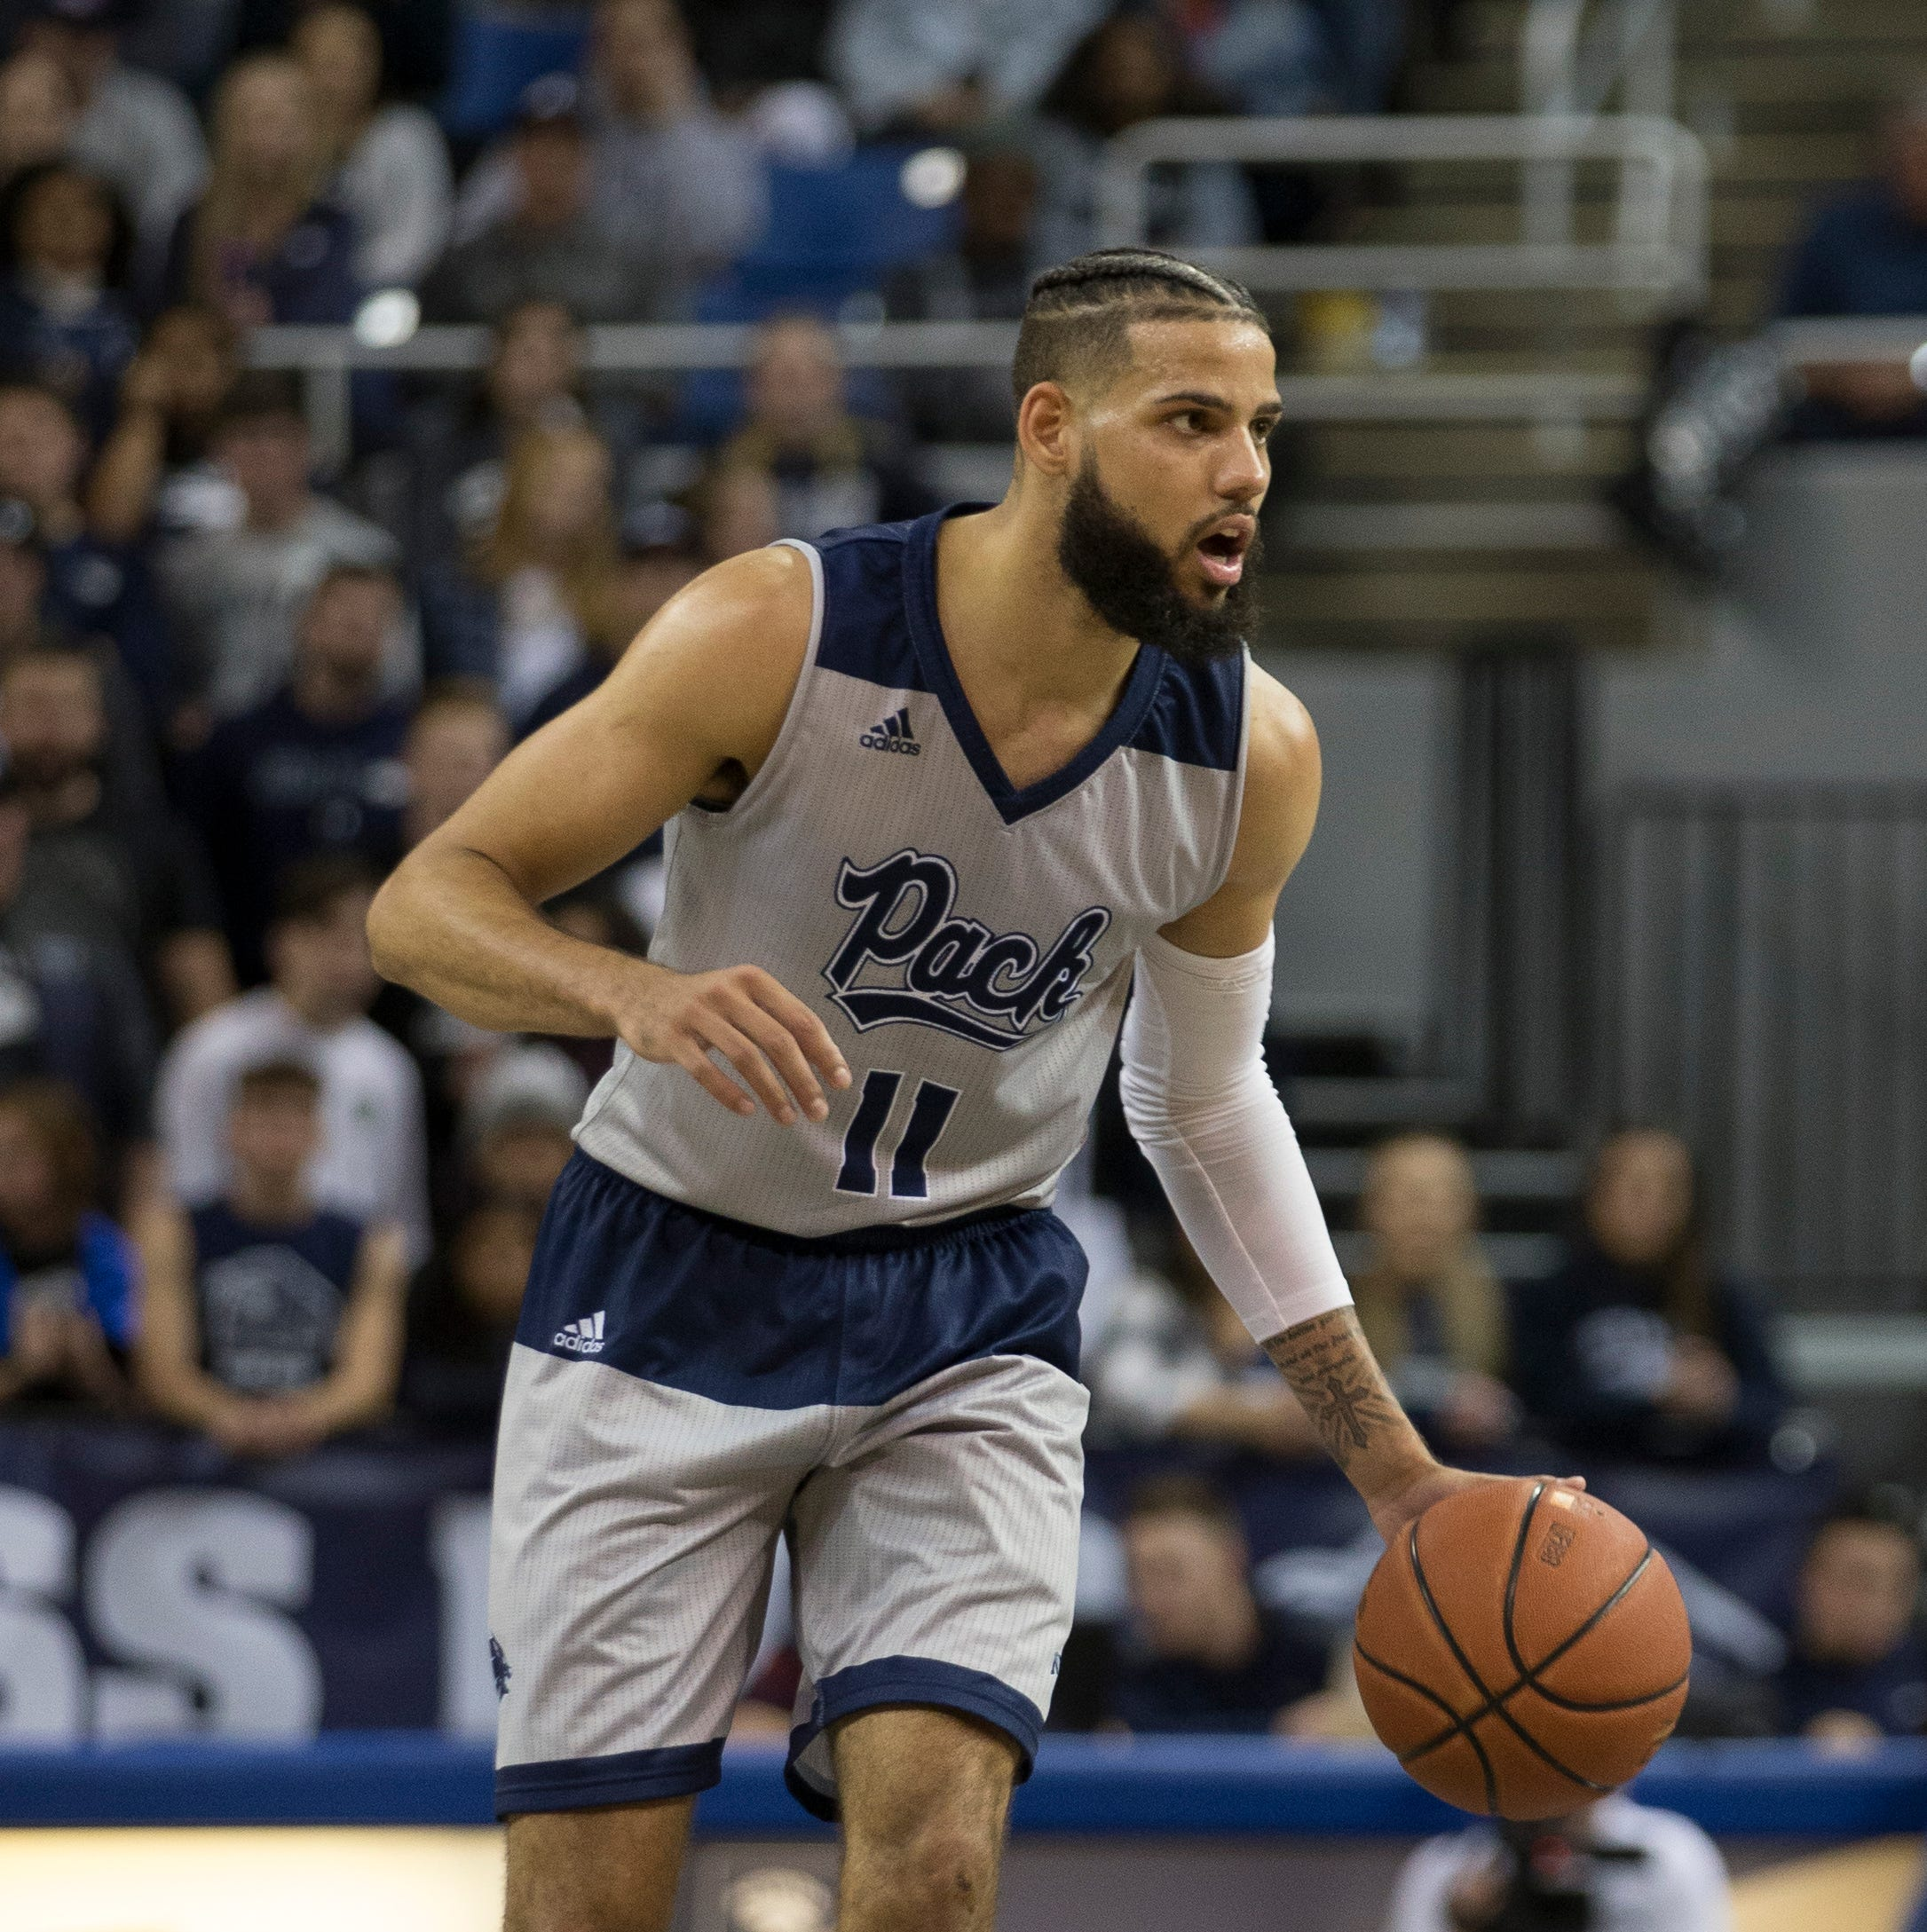 Pack finishes homestand with Division I newcomer